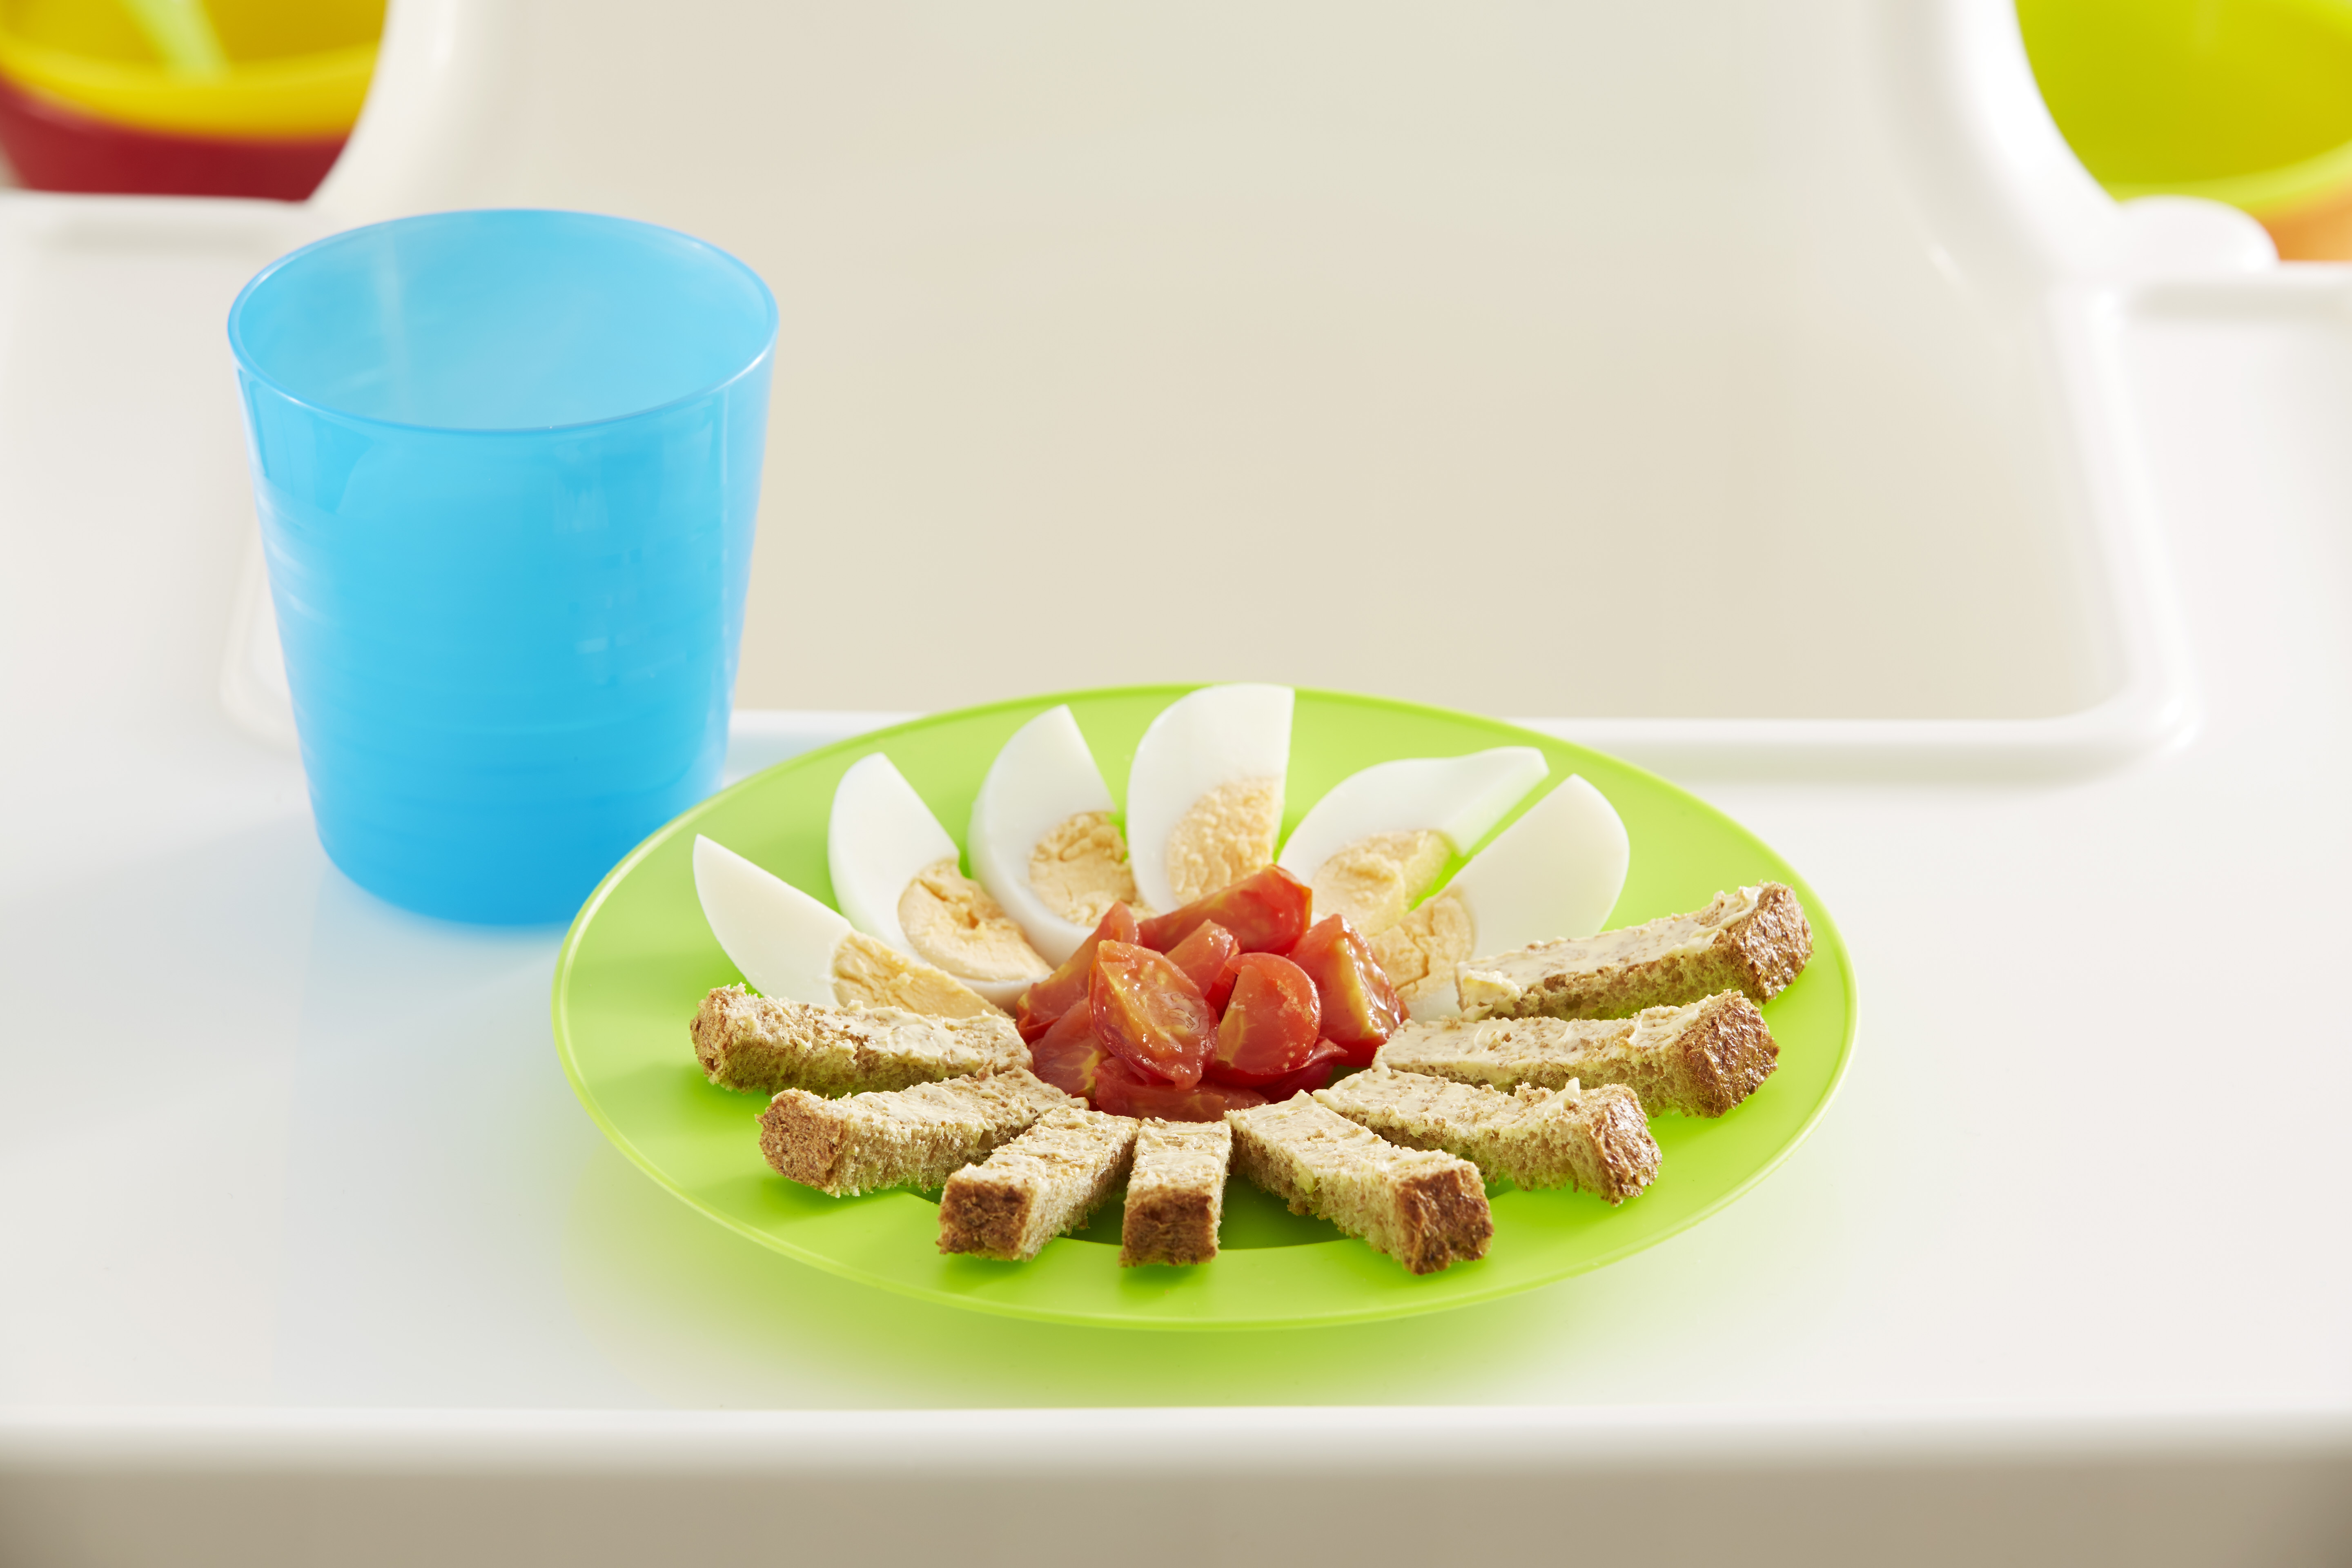 sliced egg, tomato and bread on a plate